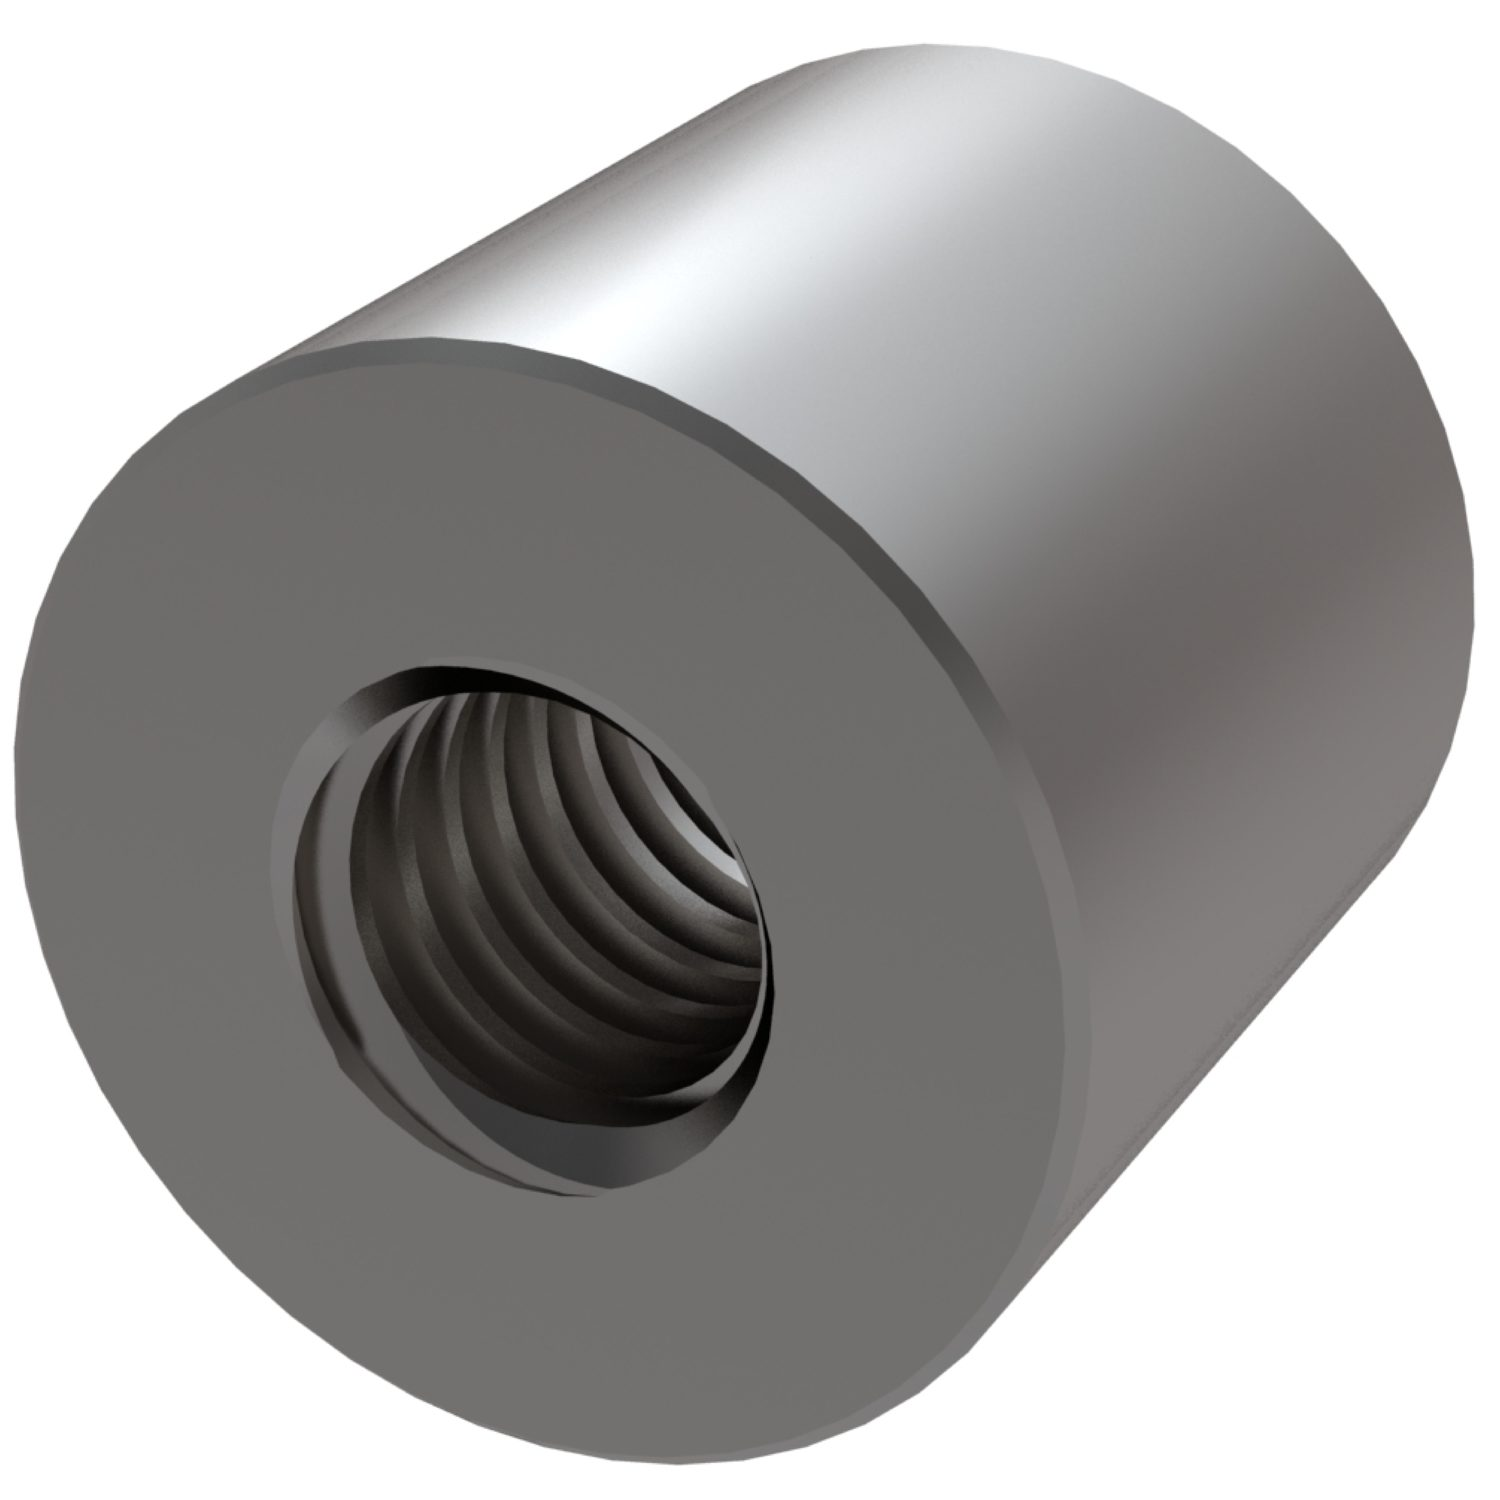 L1341 - Cylindrical Stainless Steel Nuts